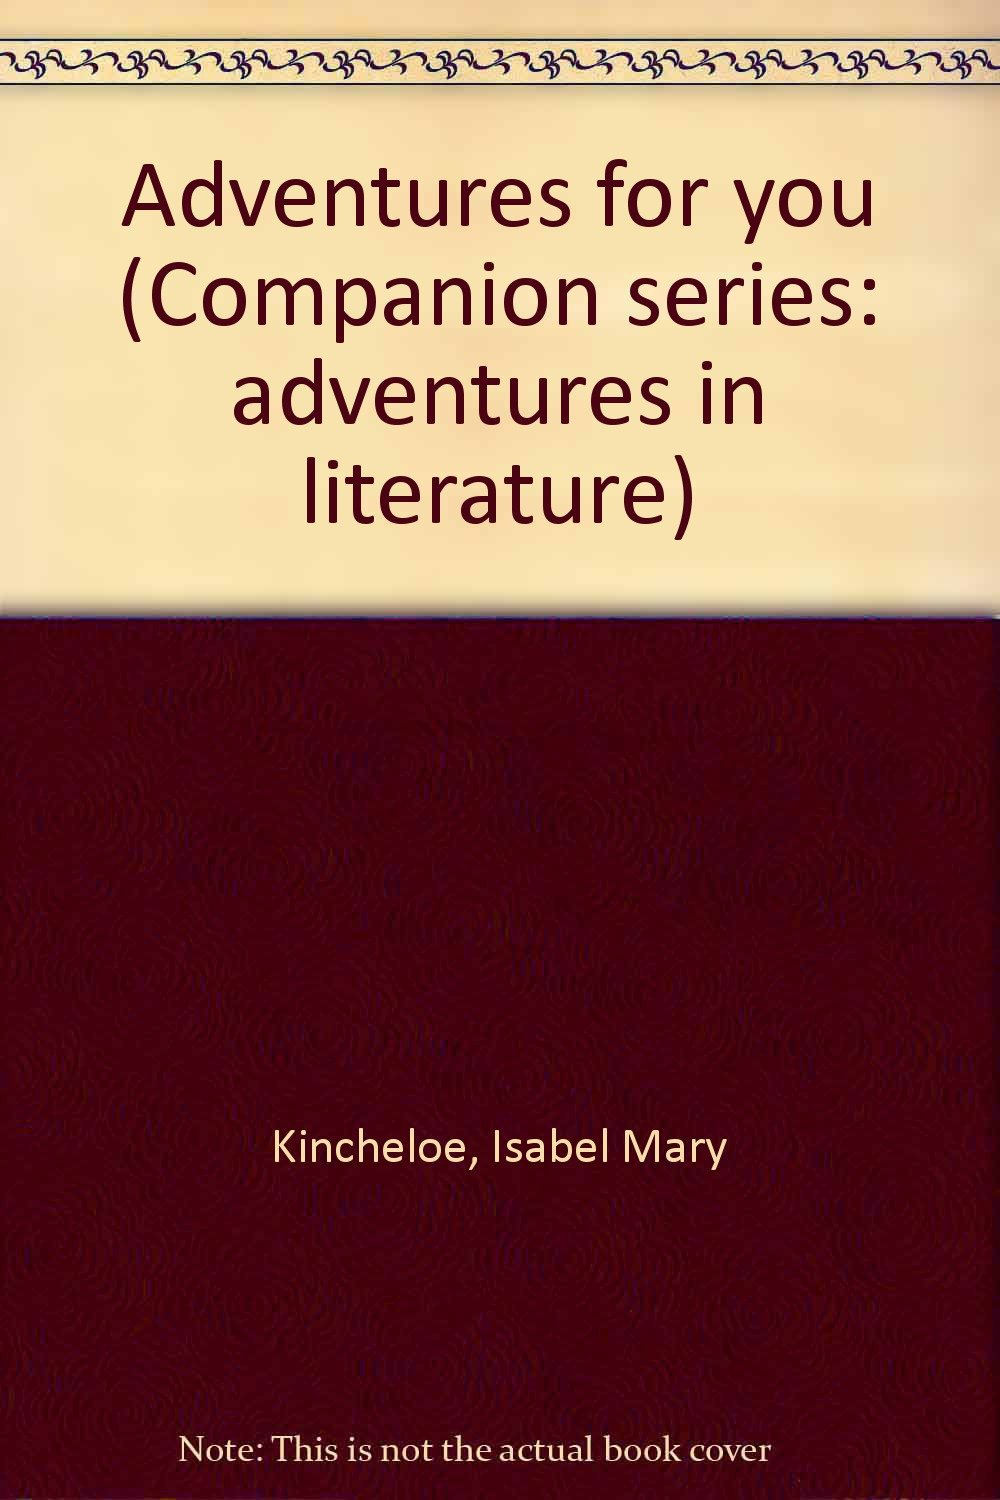 ADVENTURES FOR YOU Companion Series Adventures in Literature 1962